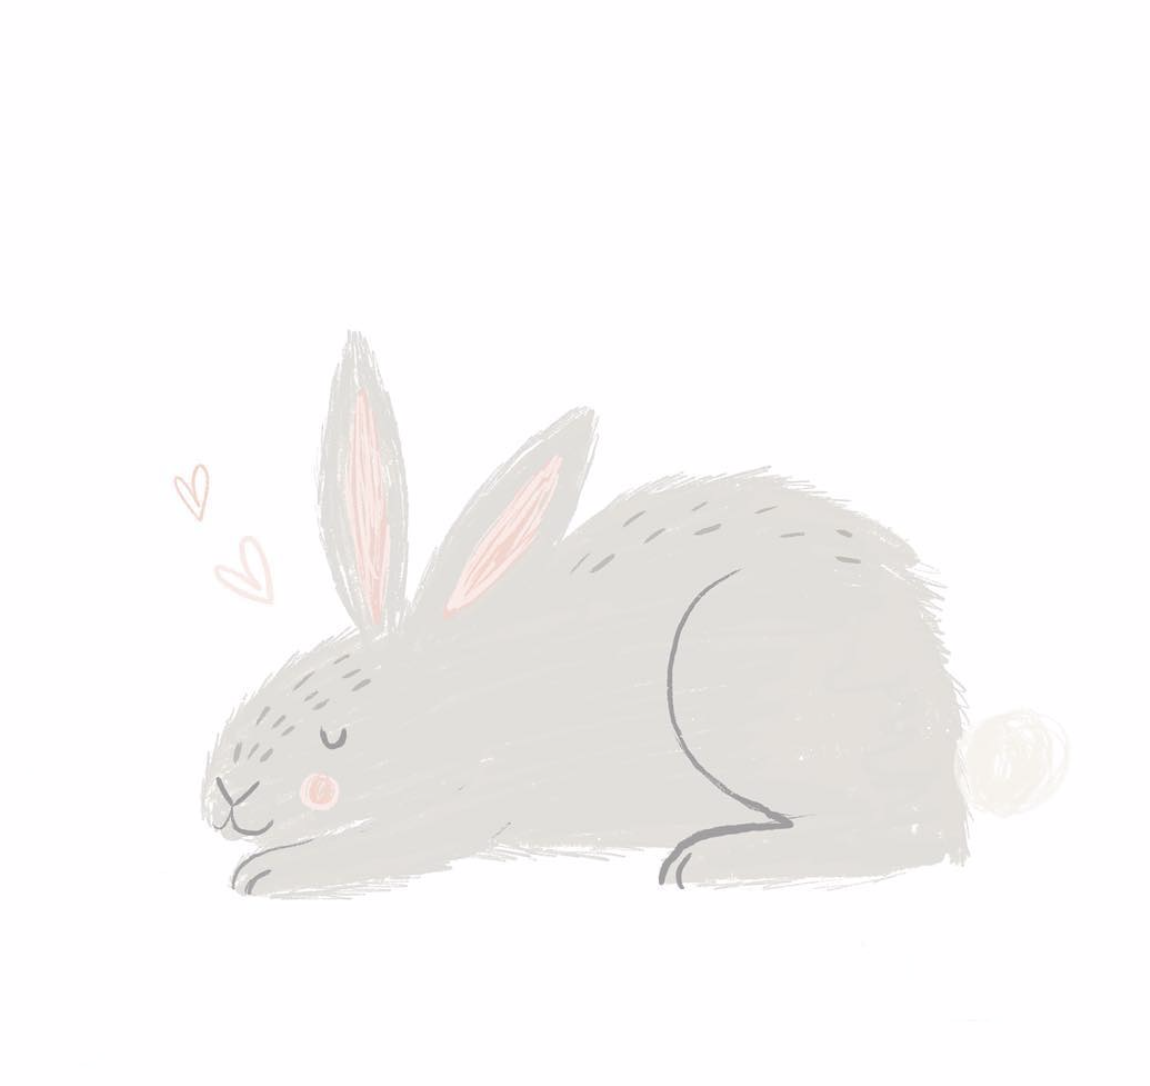 lisa-claire-stewart-pet-portraits-grey-bunny-illustration.png